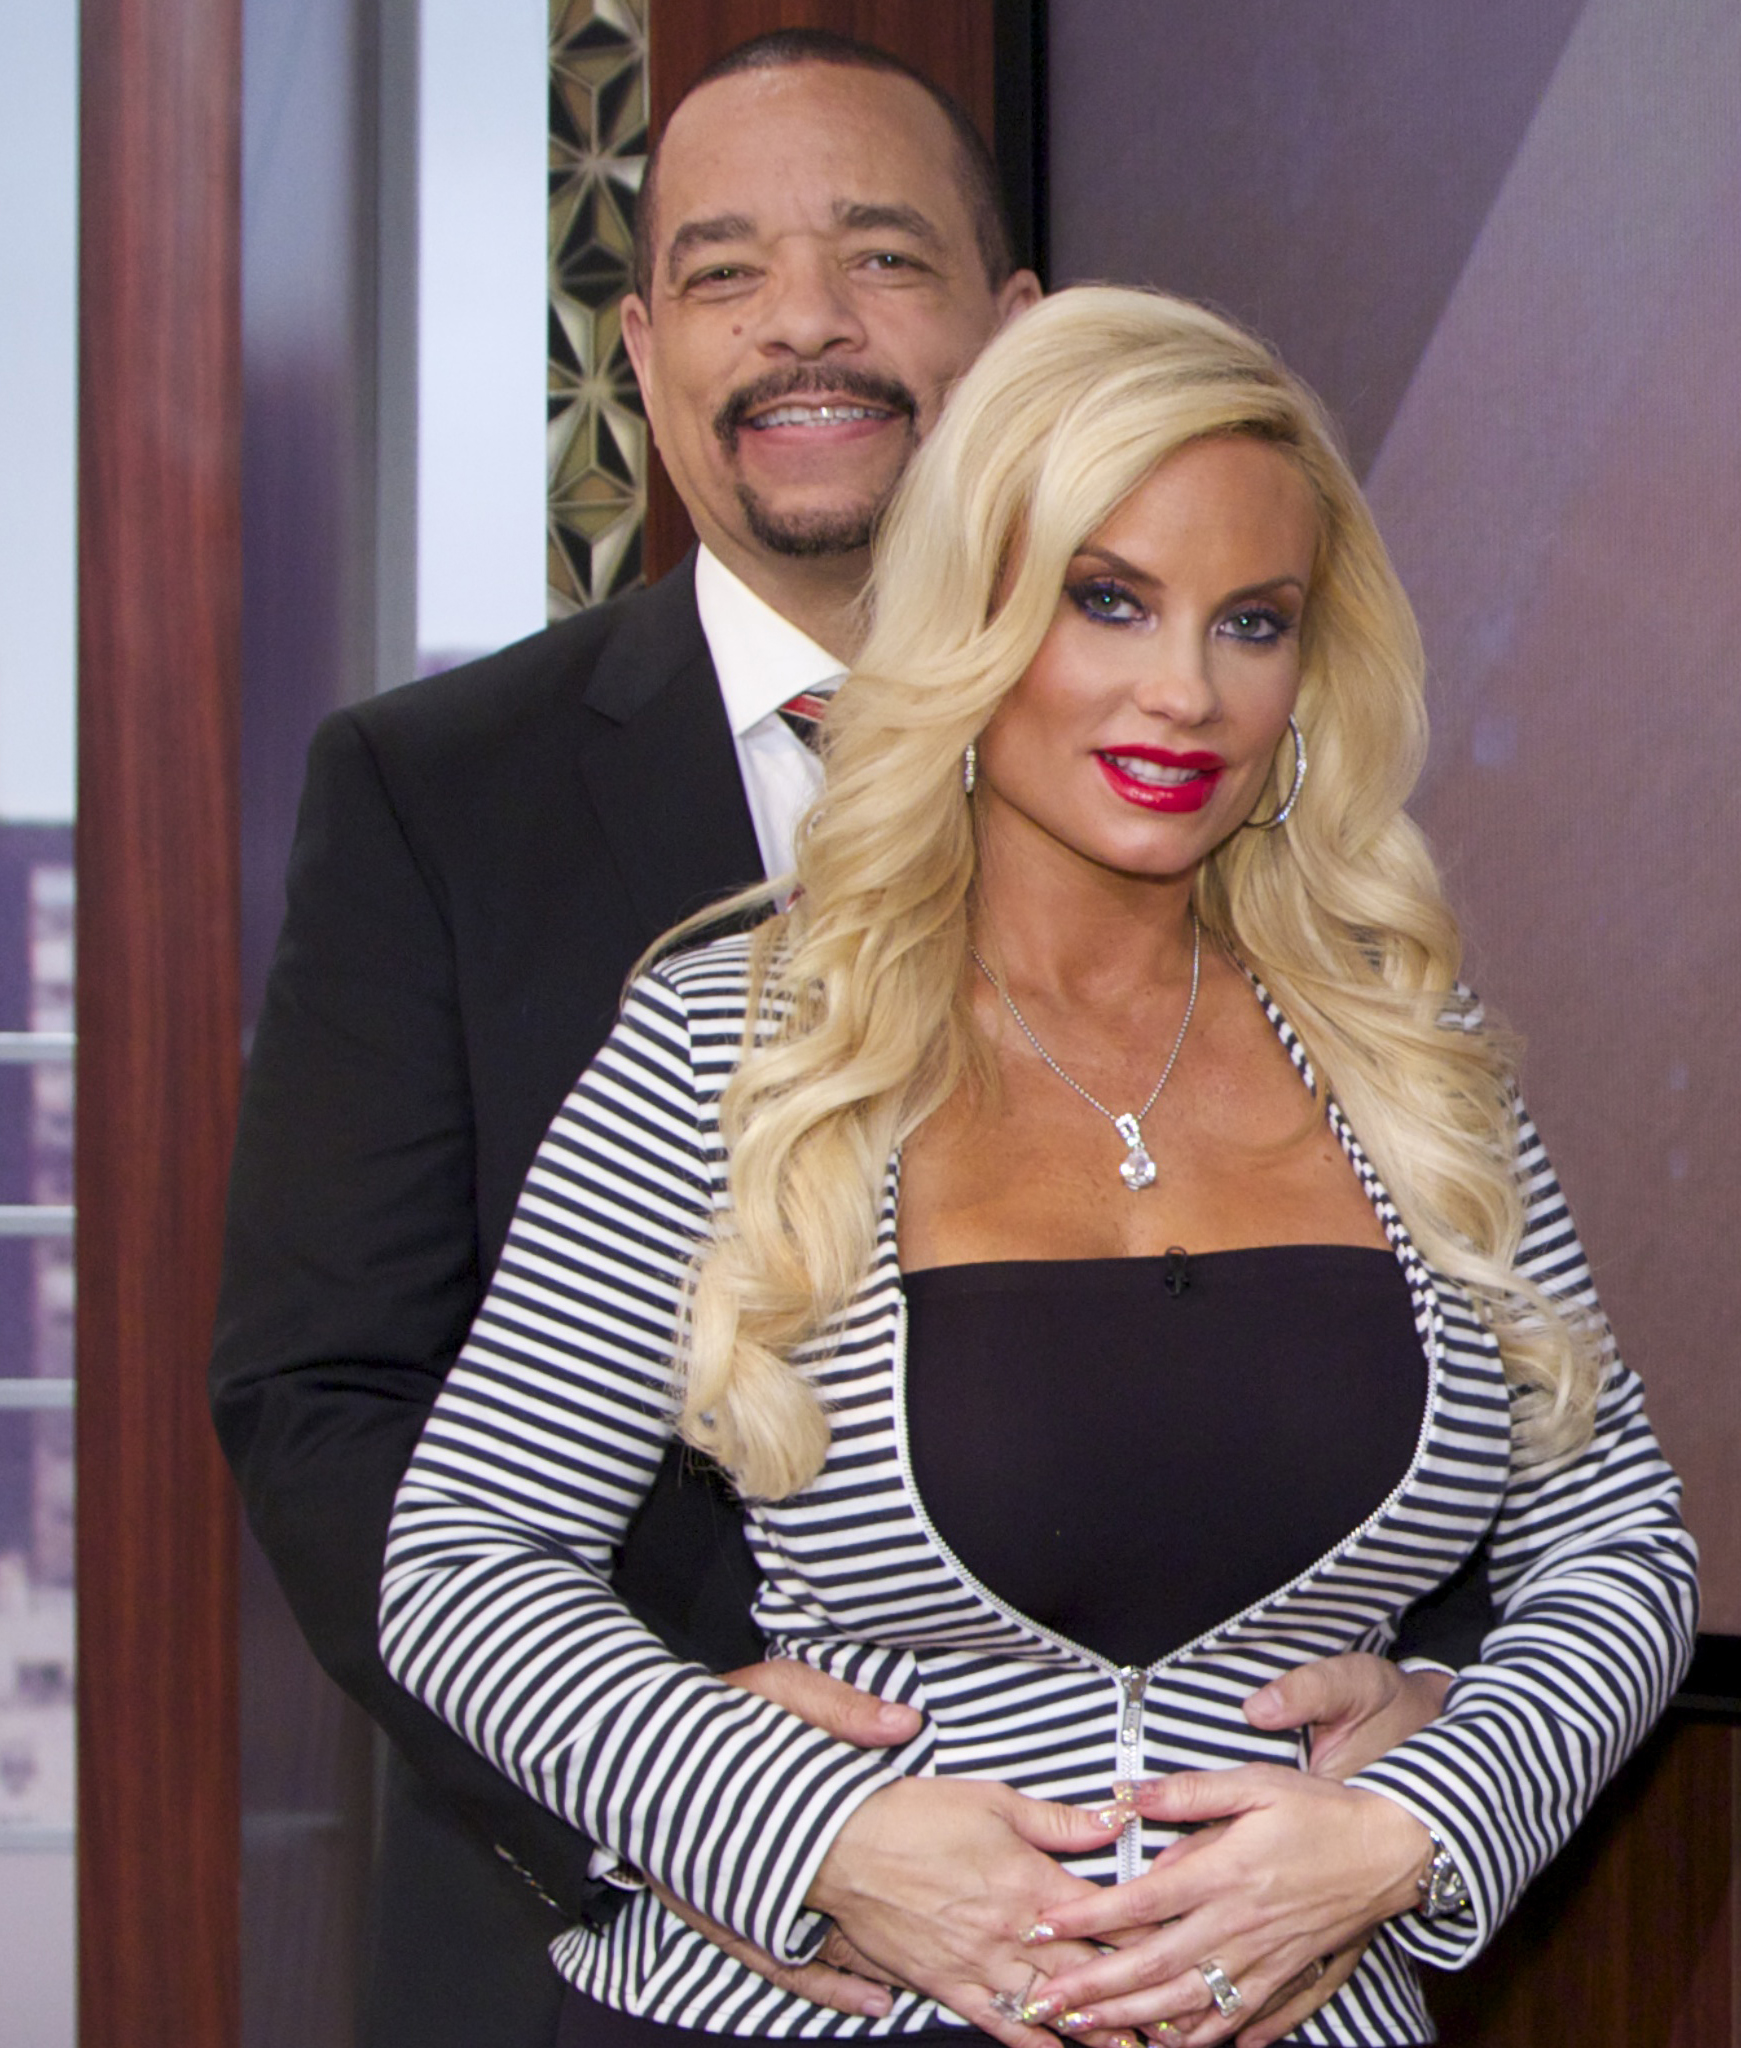 Ice-T & Coco Reveal Baby's Gender and Name in 'Ice & Coco' Premiere